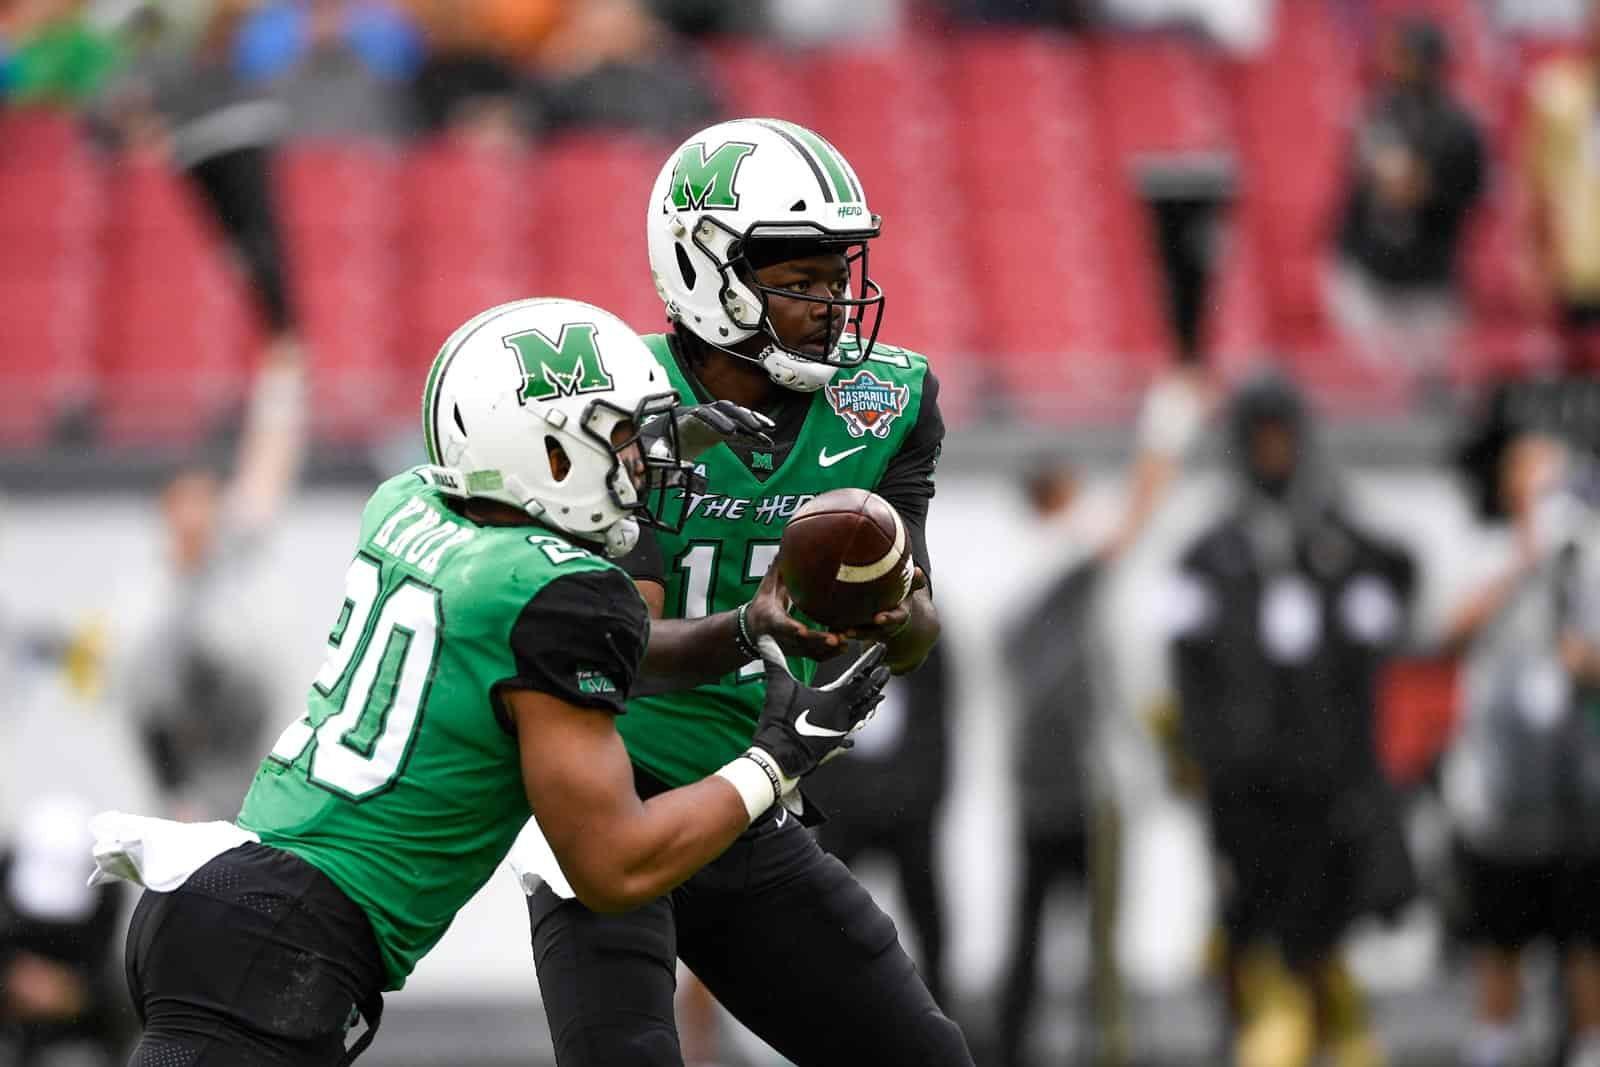 Appalachian State Marshall Schedule Football Games In 2020 2029